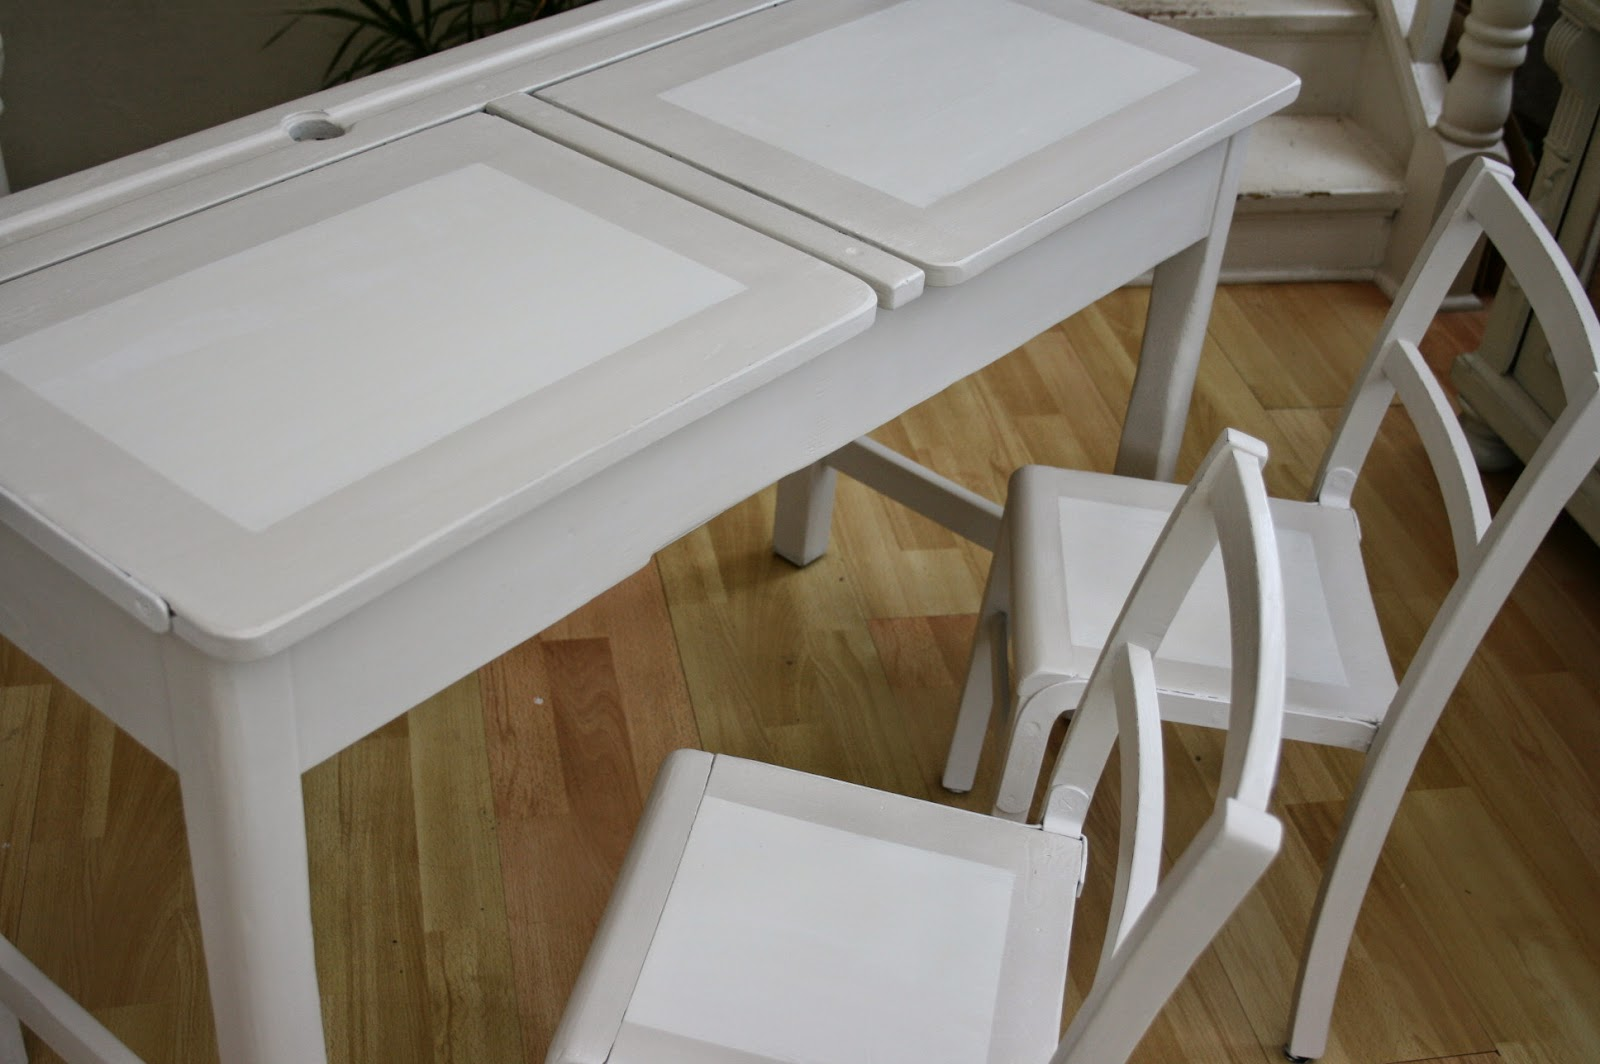 Farrow and Ball Shaded White painted furniture